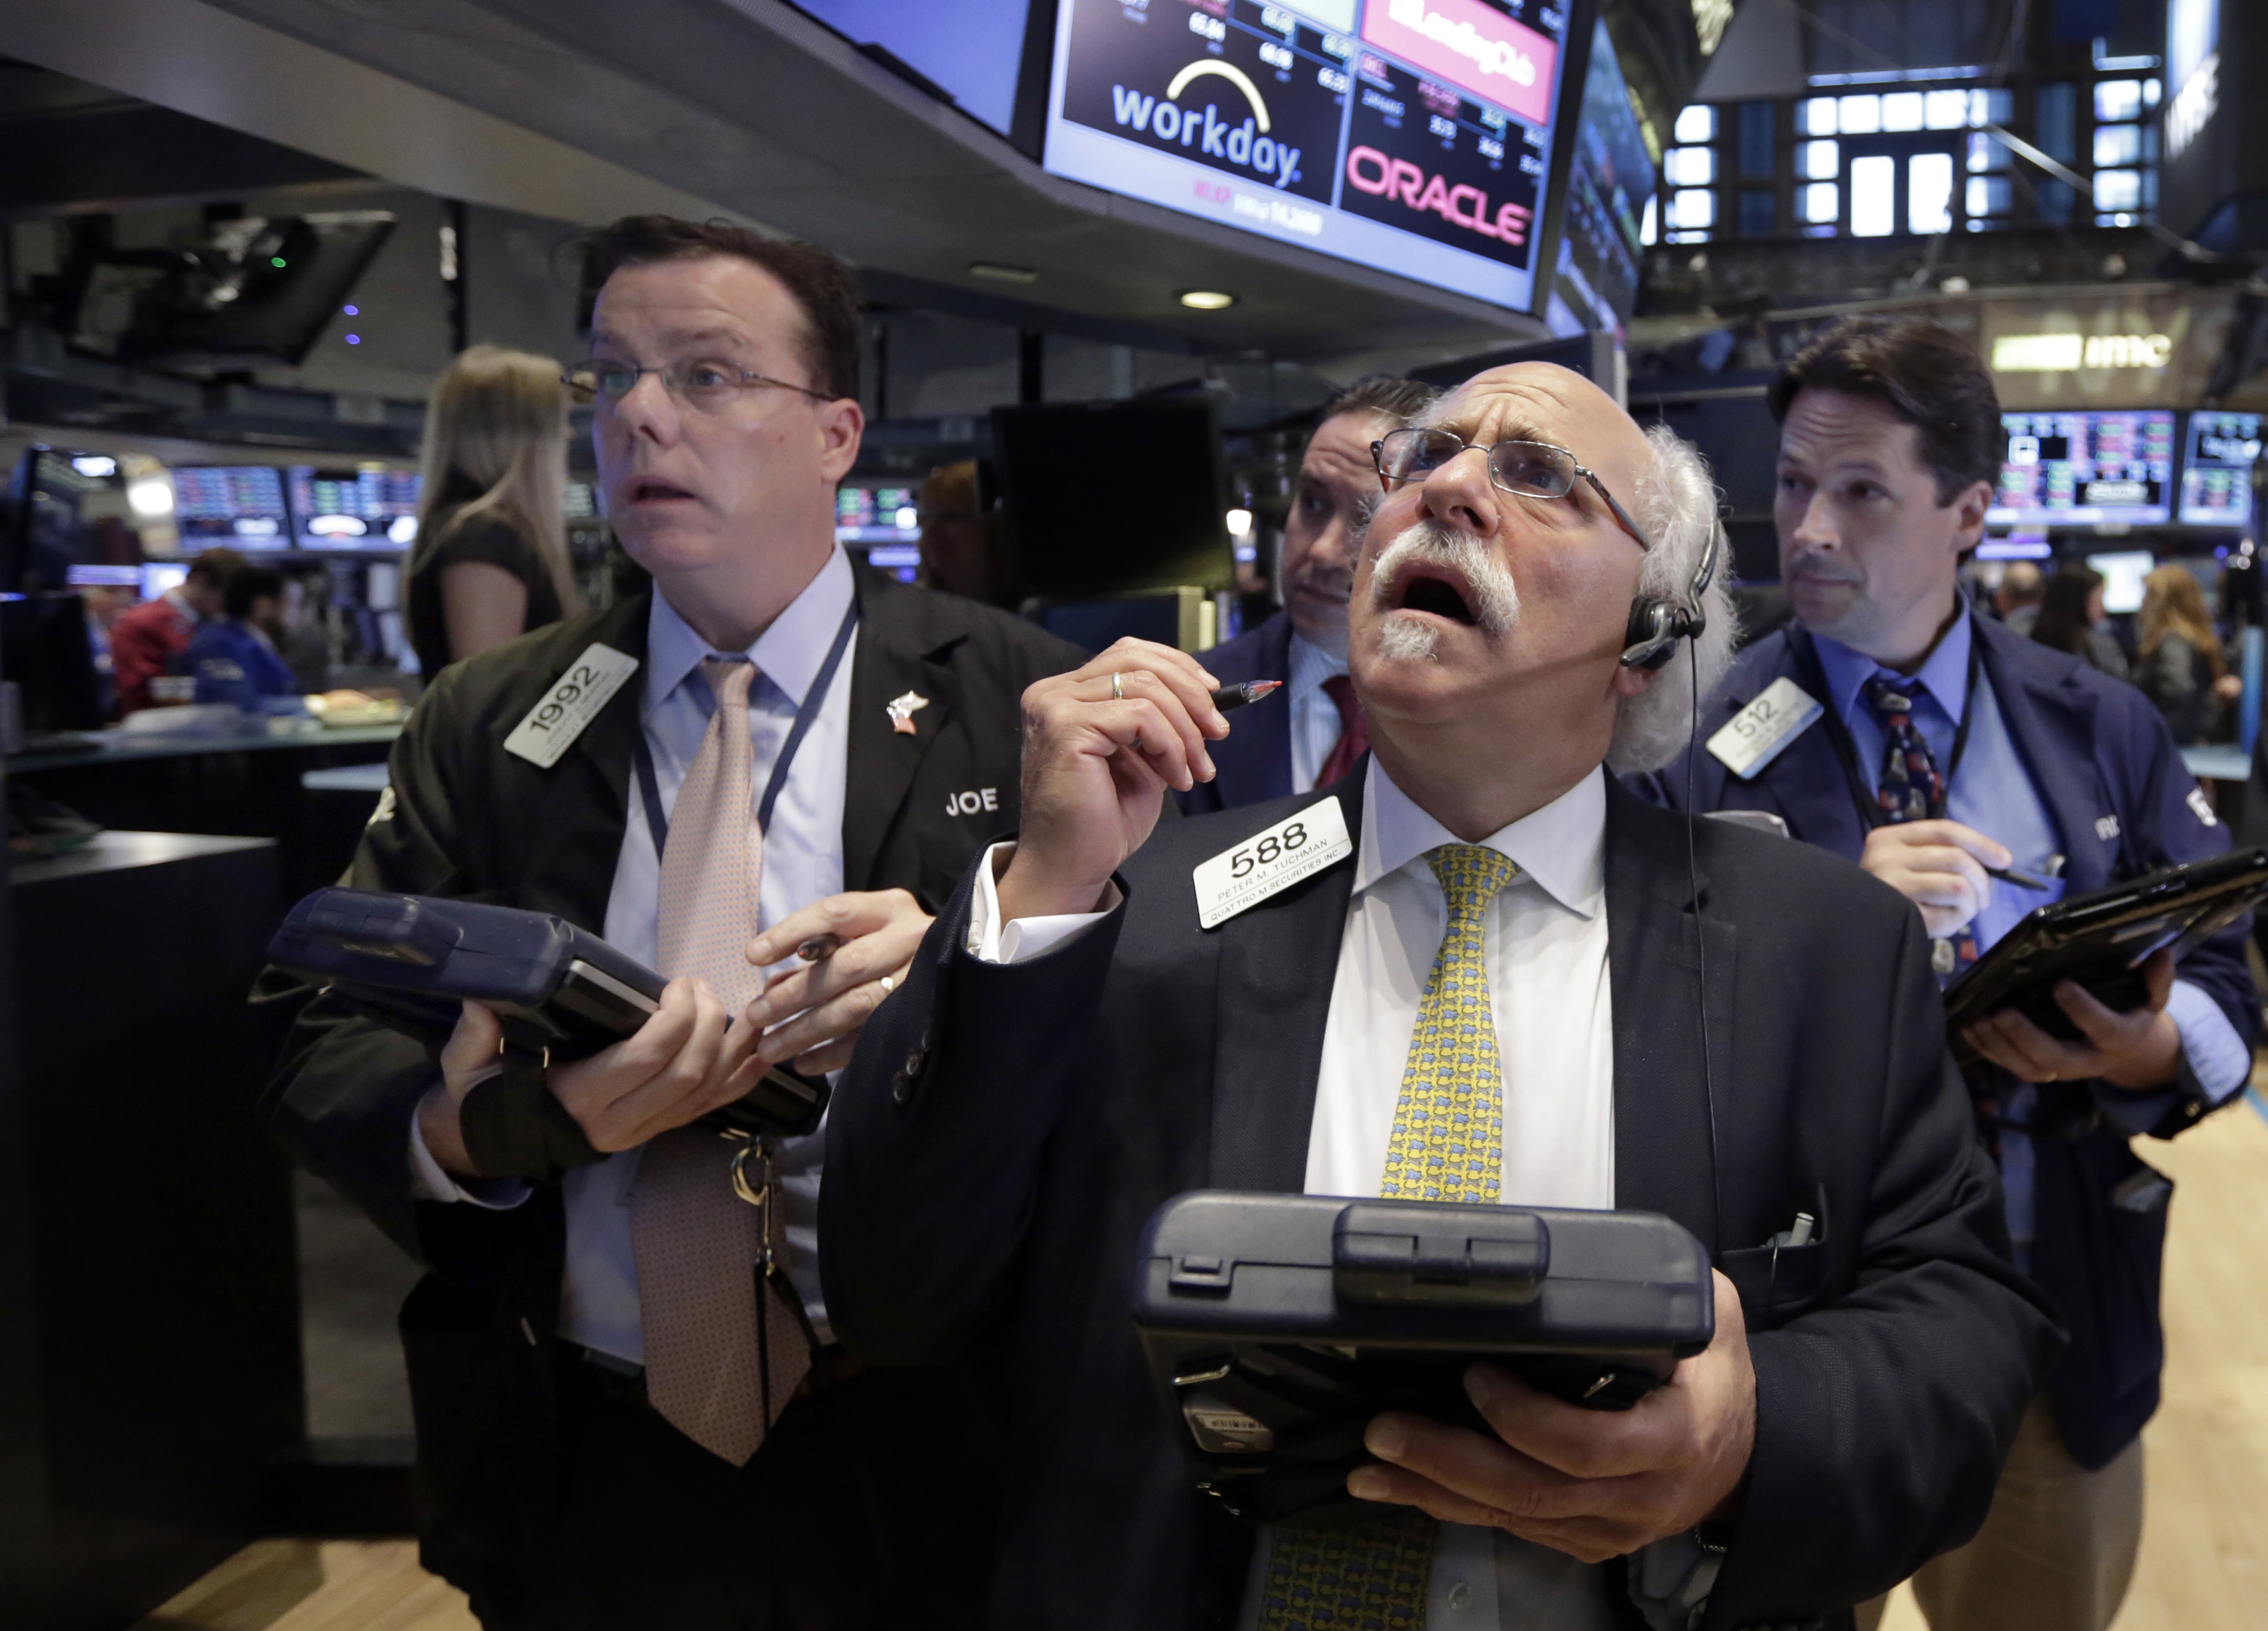 Peter Tuchman, foreground right, works with fellow traders on the floor of the New York Stock Exchange on Aug. 24, 2015.